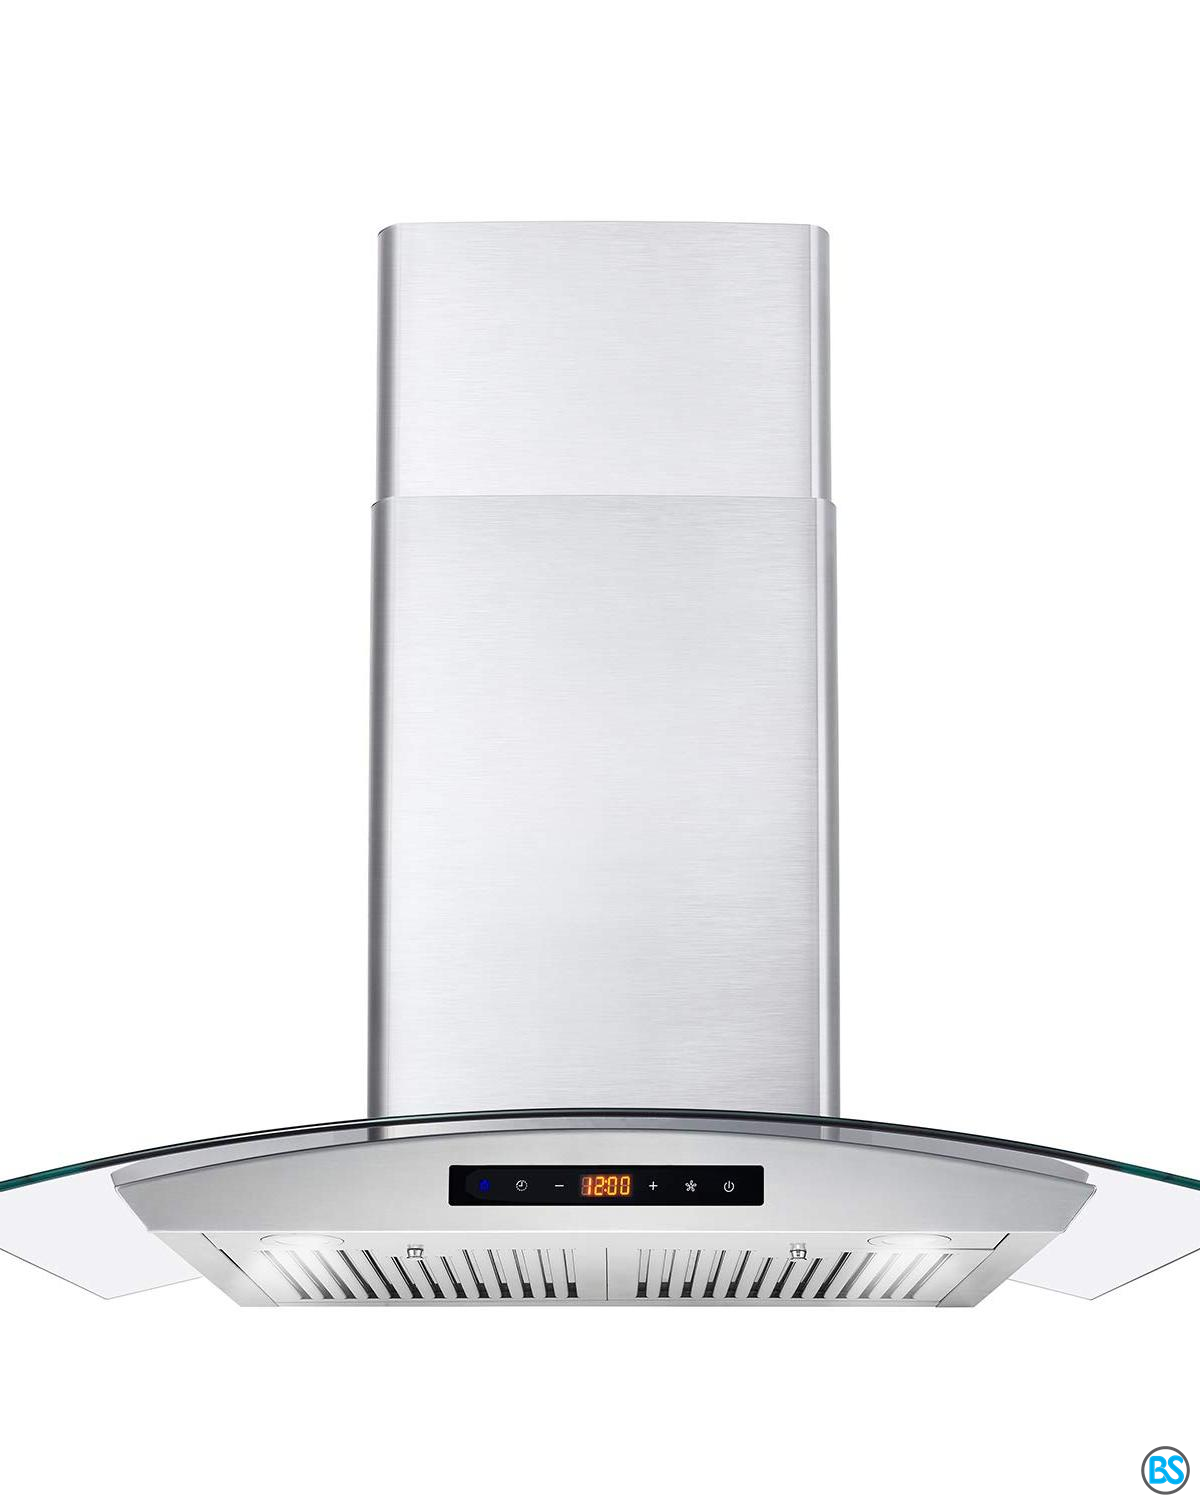 Range Hoods Cosmo Cos 668as750 Wall Mount Range Hood 380 Cfm Ductless Convertible Duct Glass Chimney Over Stove Vent With Light 3 Speed Exhaust Fan Timer In 2020 Wall Mount